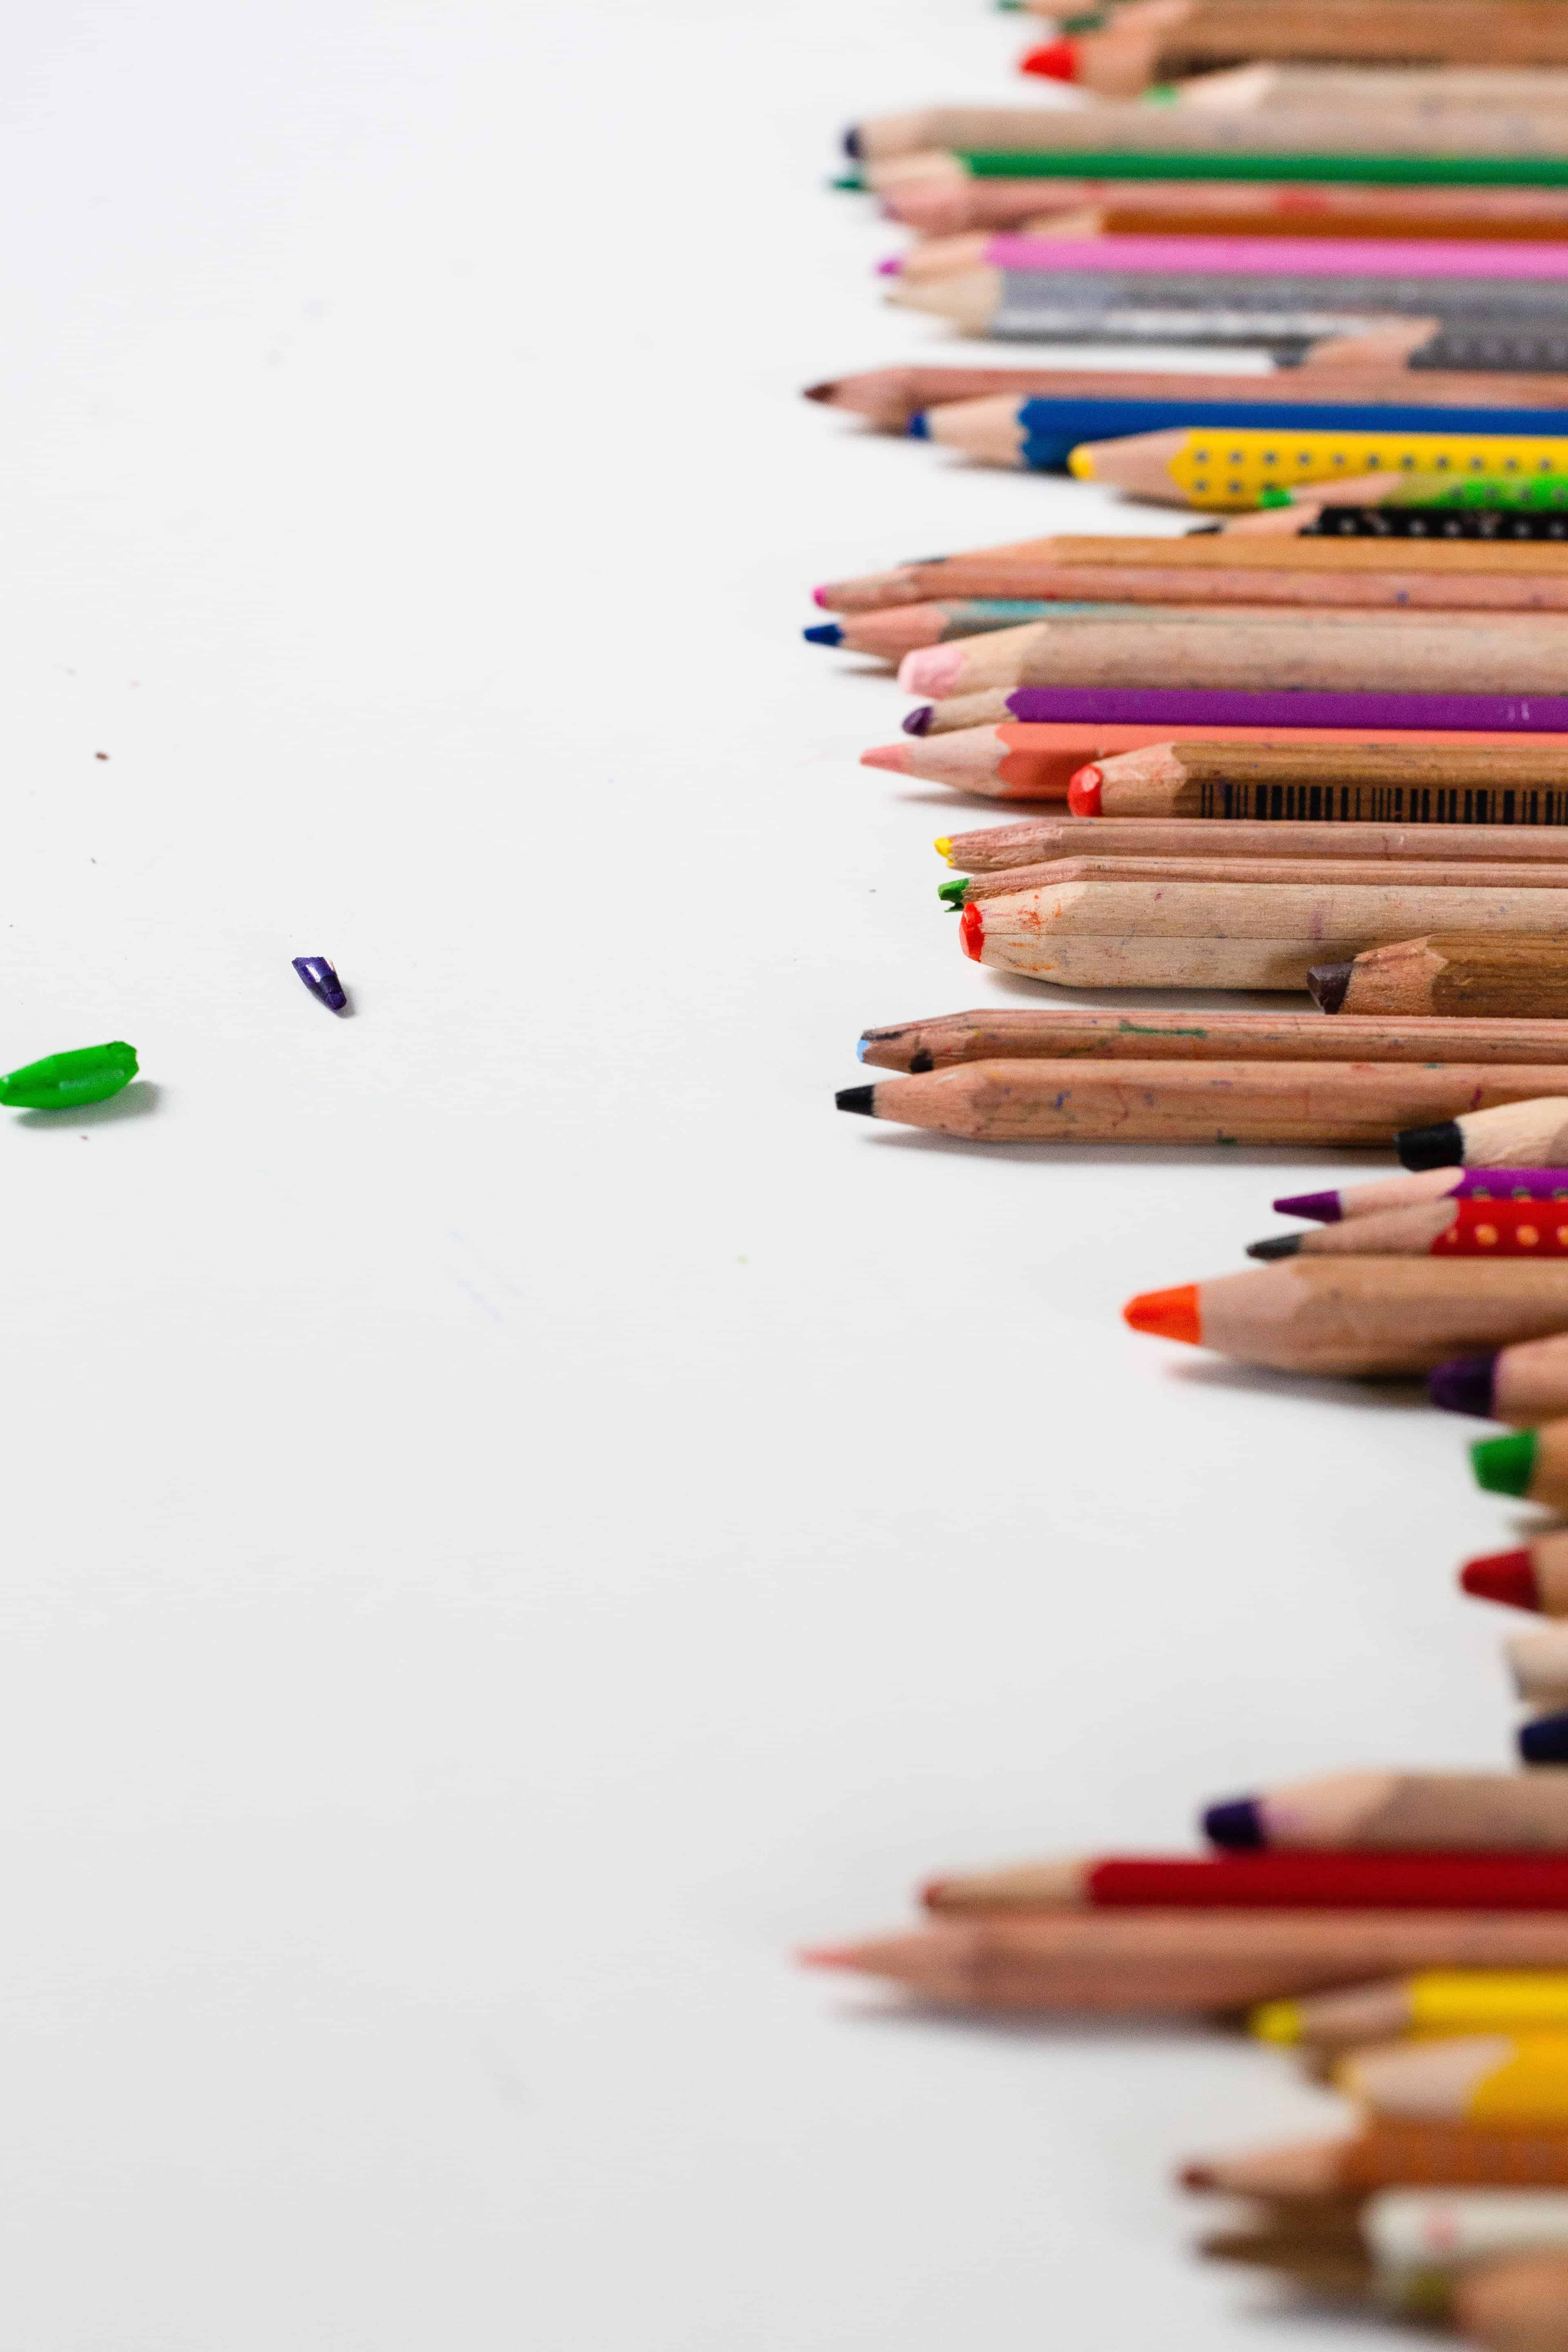 sharpened pencils on a white table